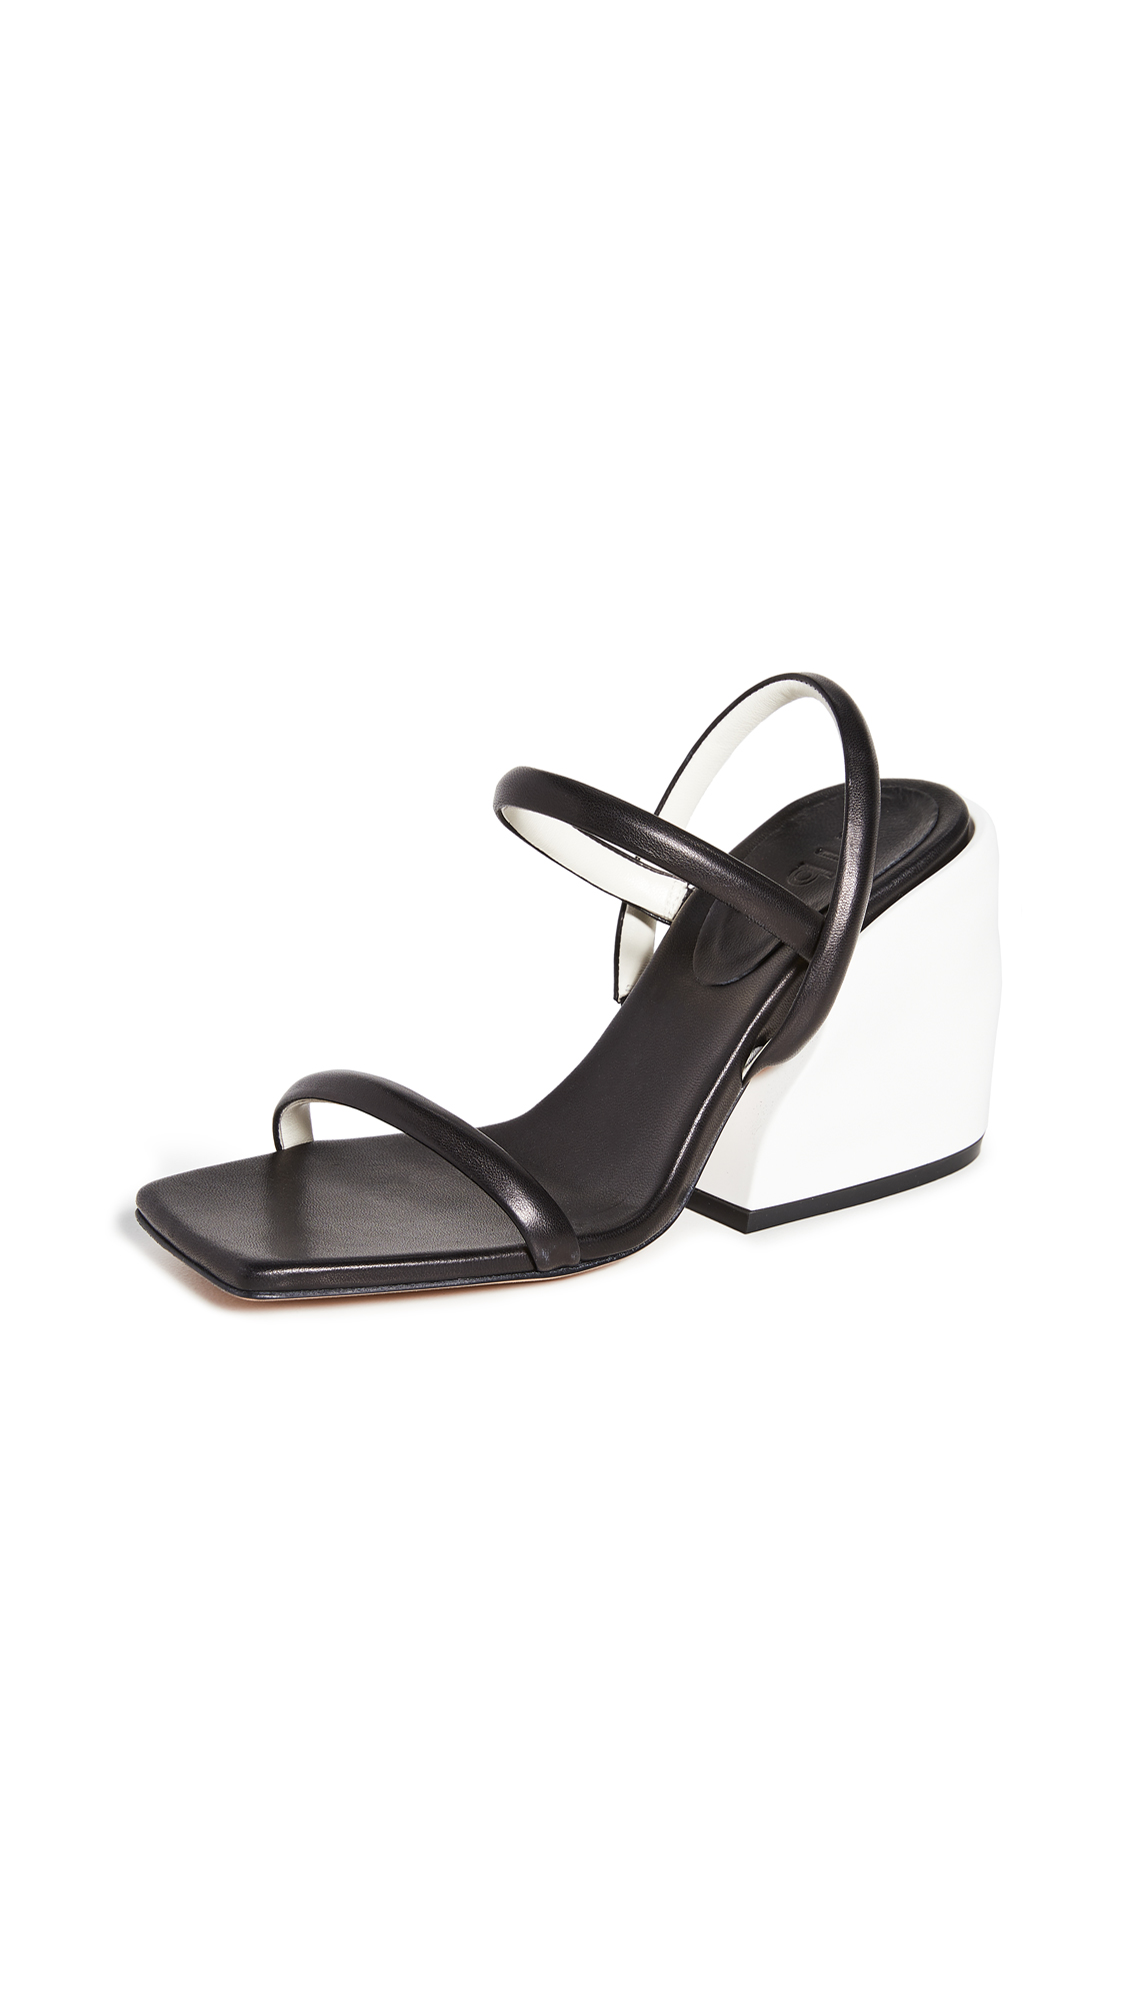 Tibi Miko Sandals - 50% Off Sale